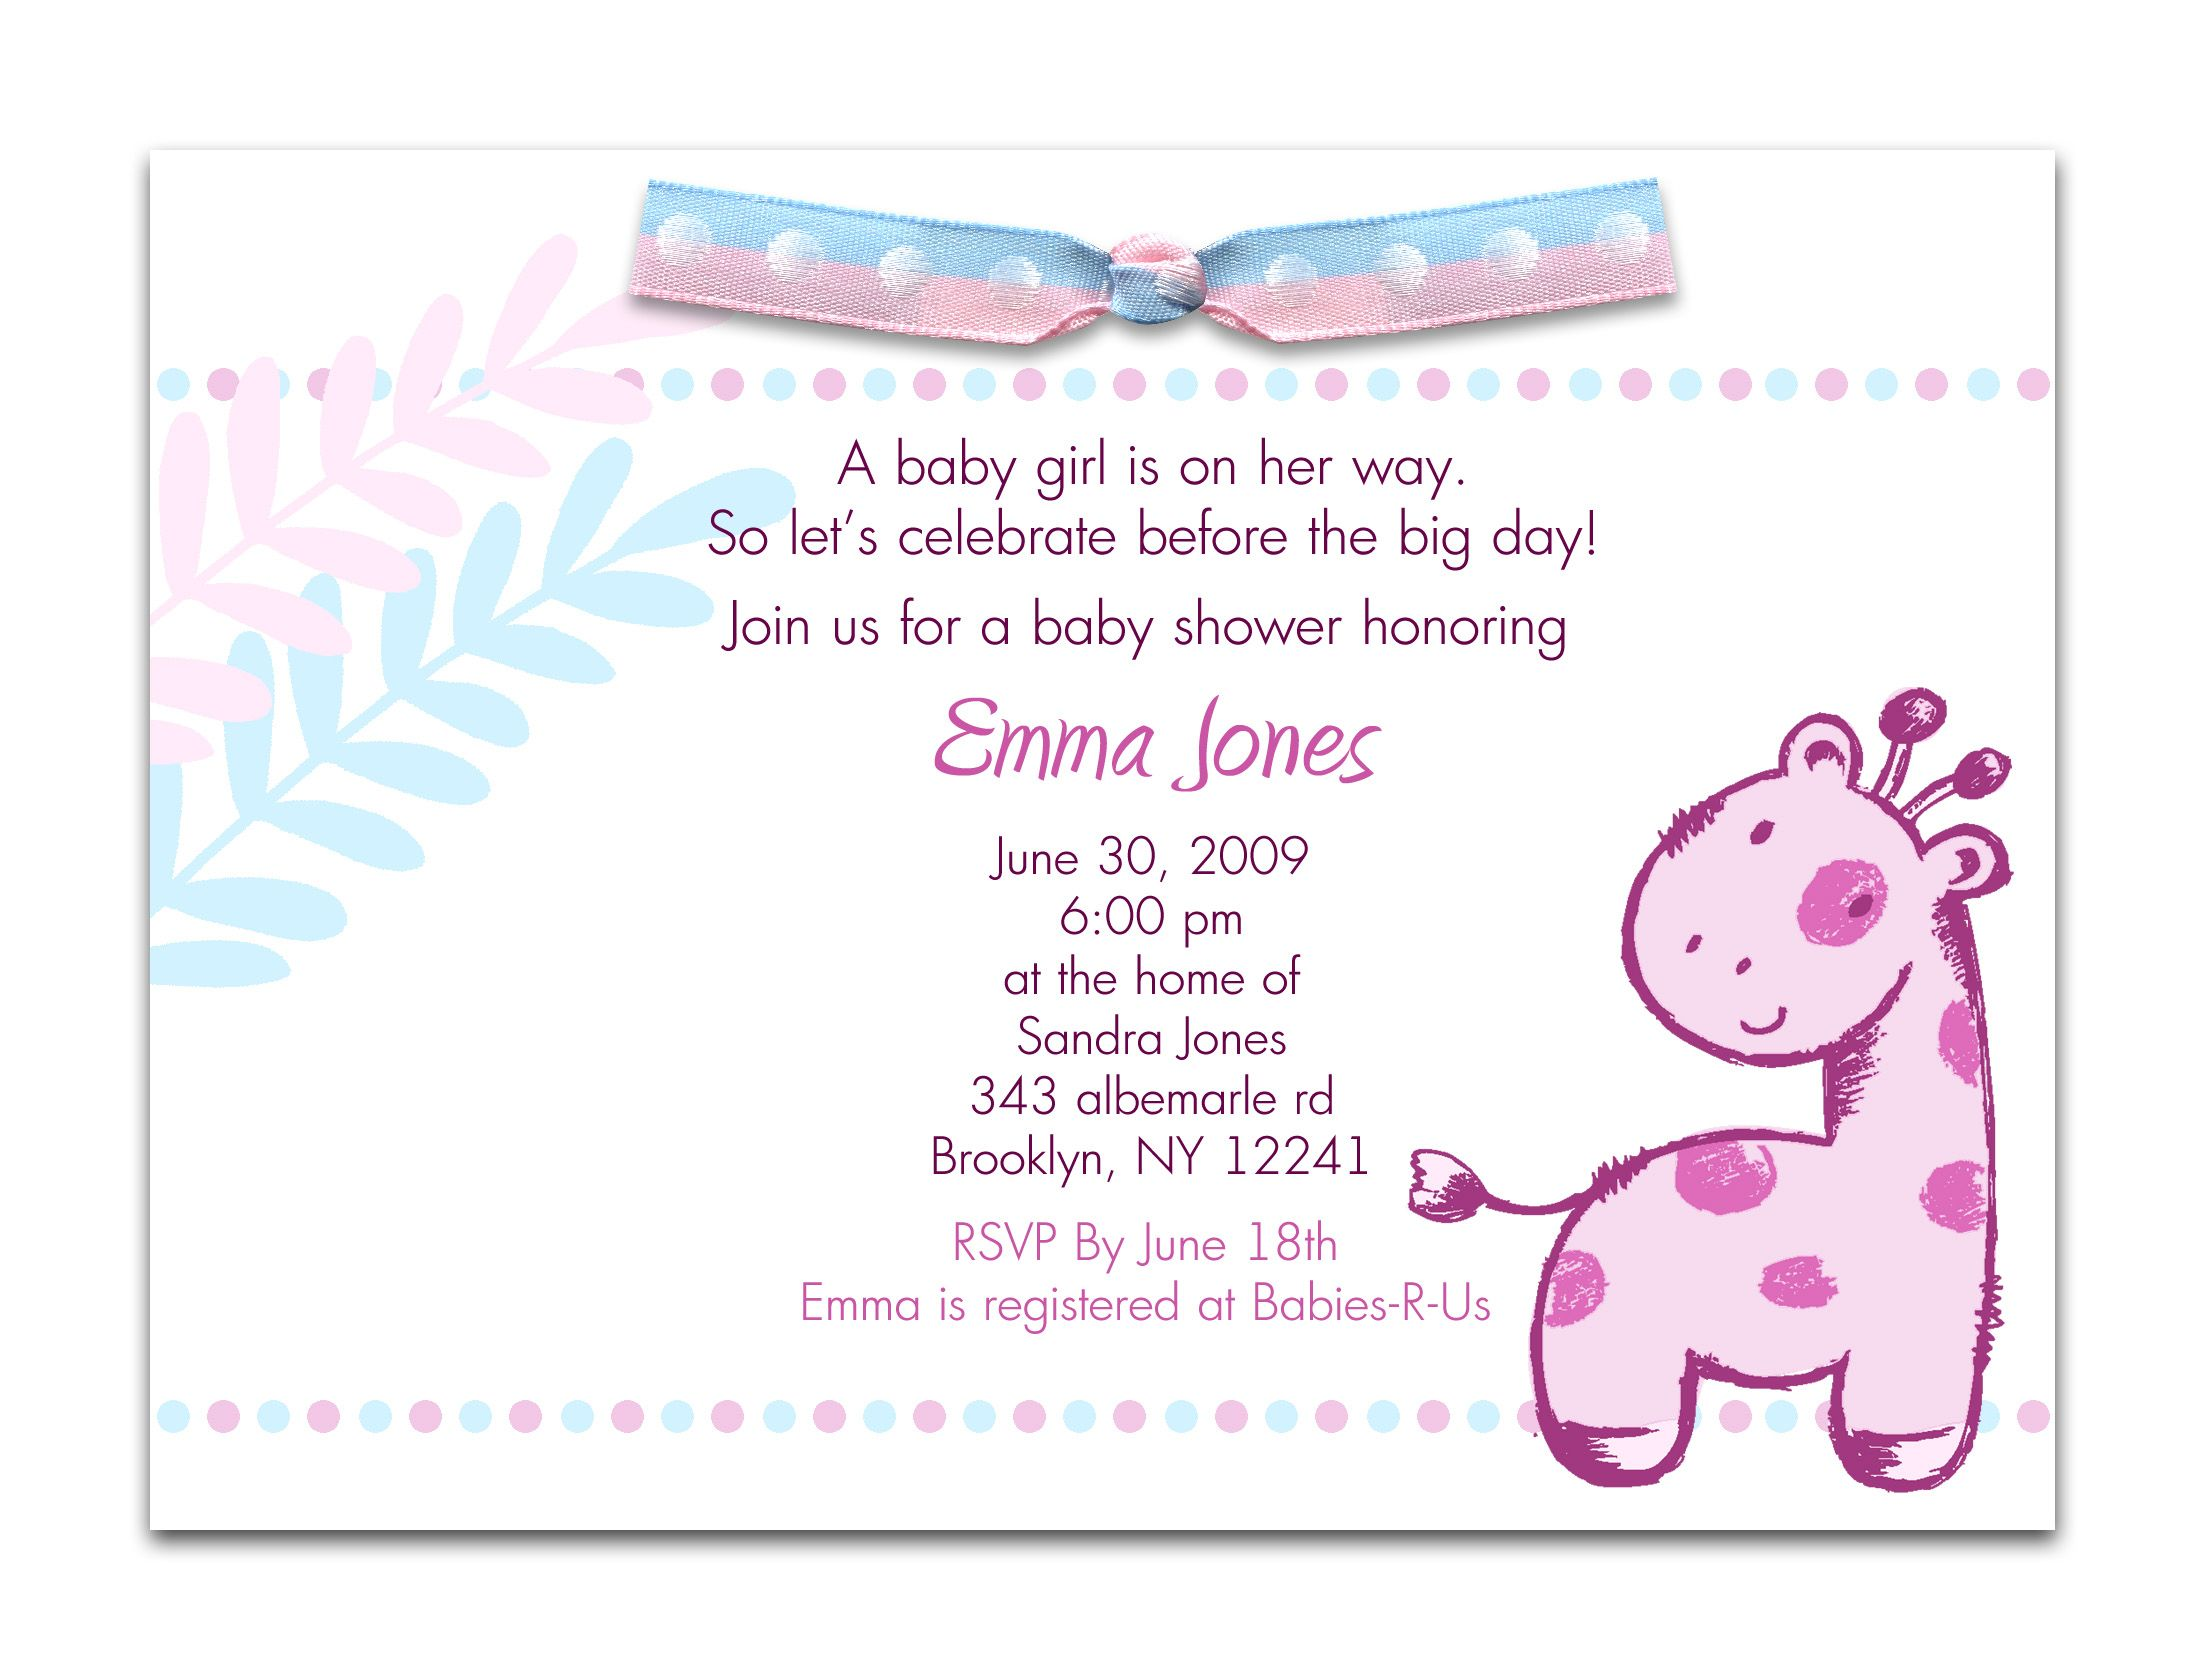 Baby Shower Invitations Card Simple Design Baby Shower – Baby Shower Invitations Words